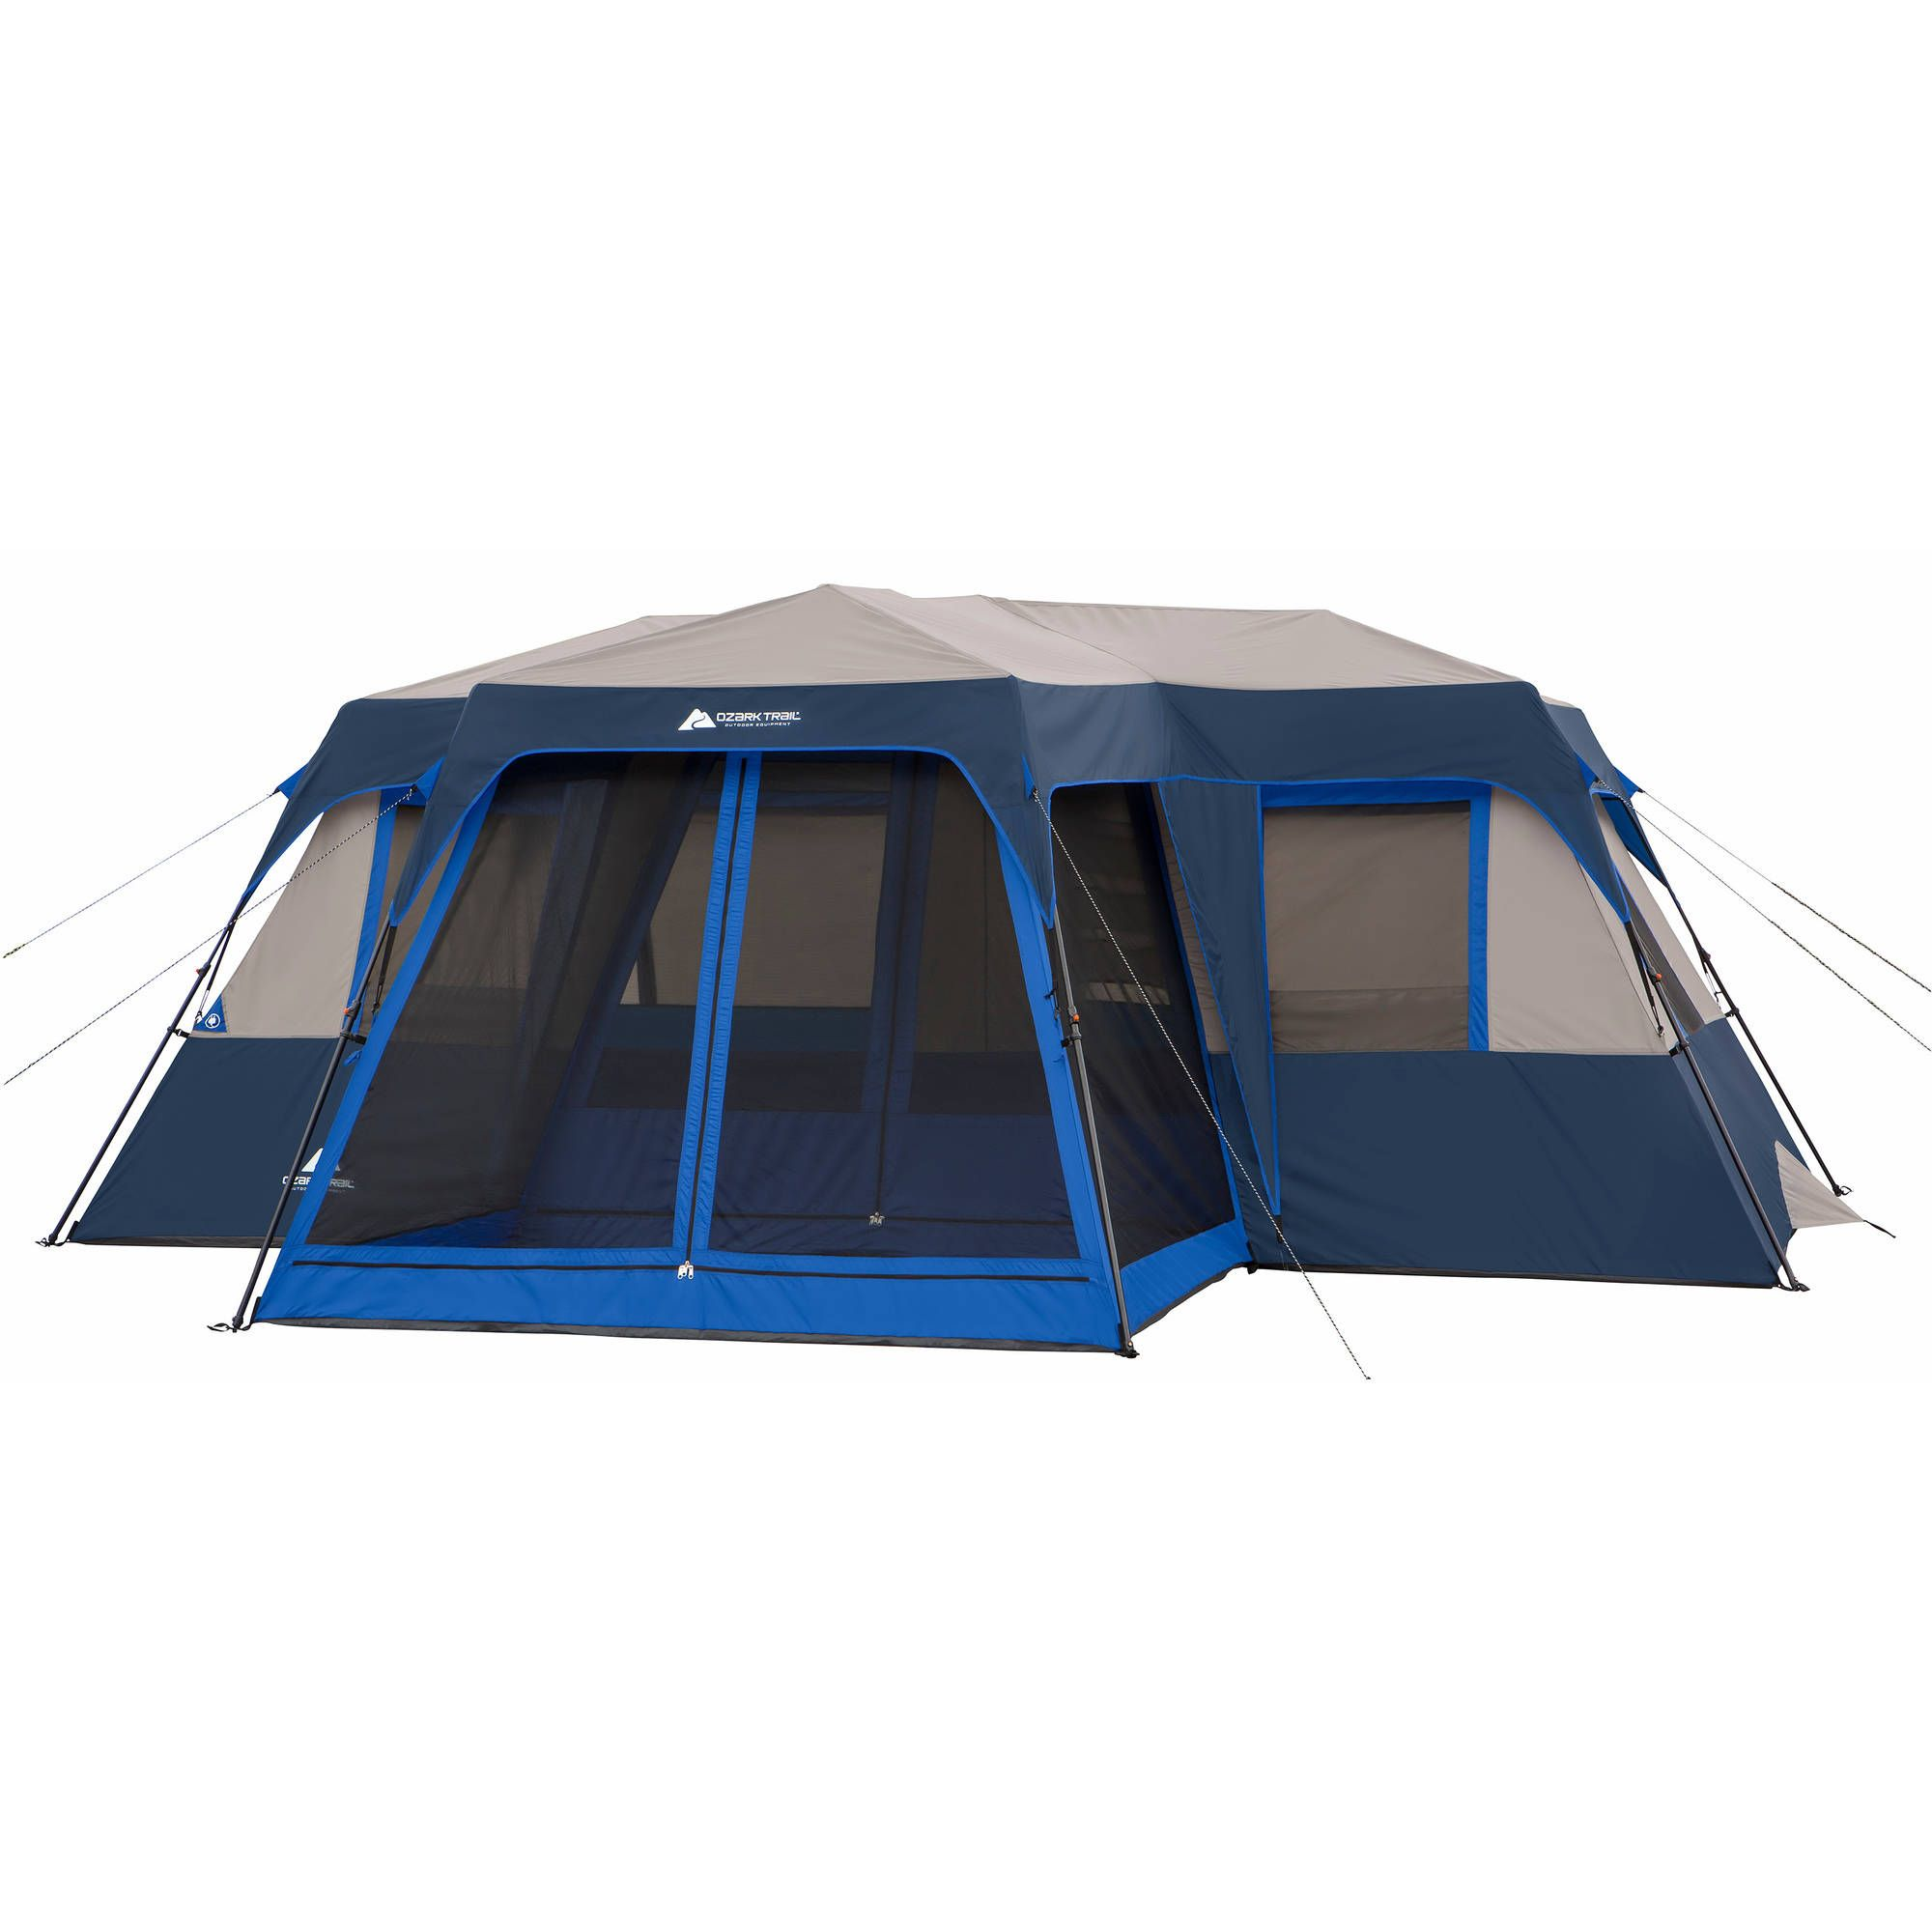 Ozark Trail 12 Person 2 Room Instant Cabin Tent with Screen Room Image 1 of 10  sc 1 st  Pinterest & Ozark Trail 12 Person 2 Room Instant Cabin Tent with Screen Room ...